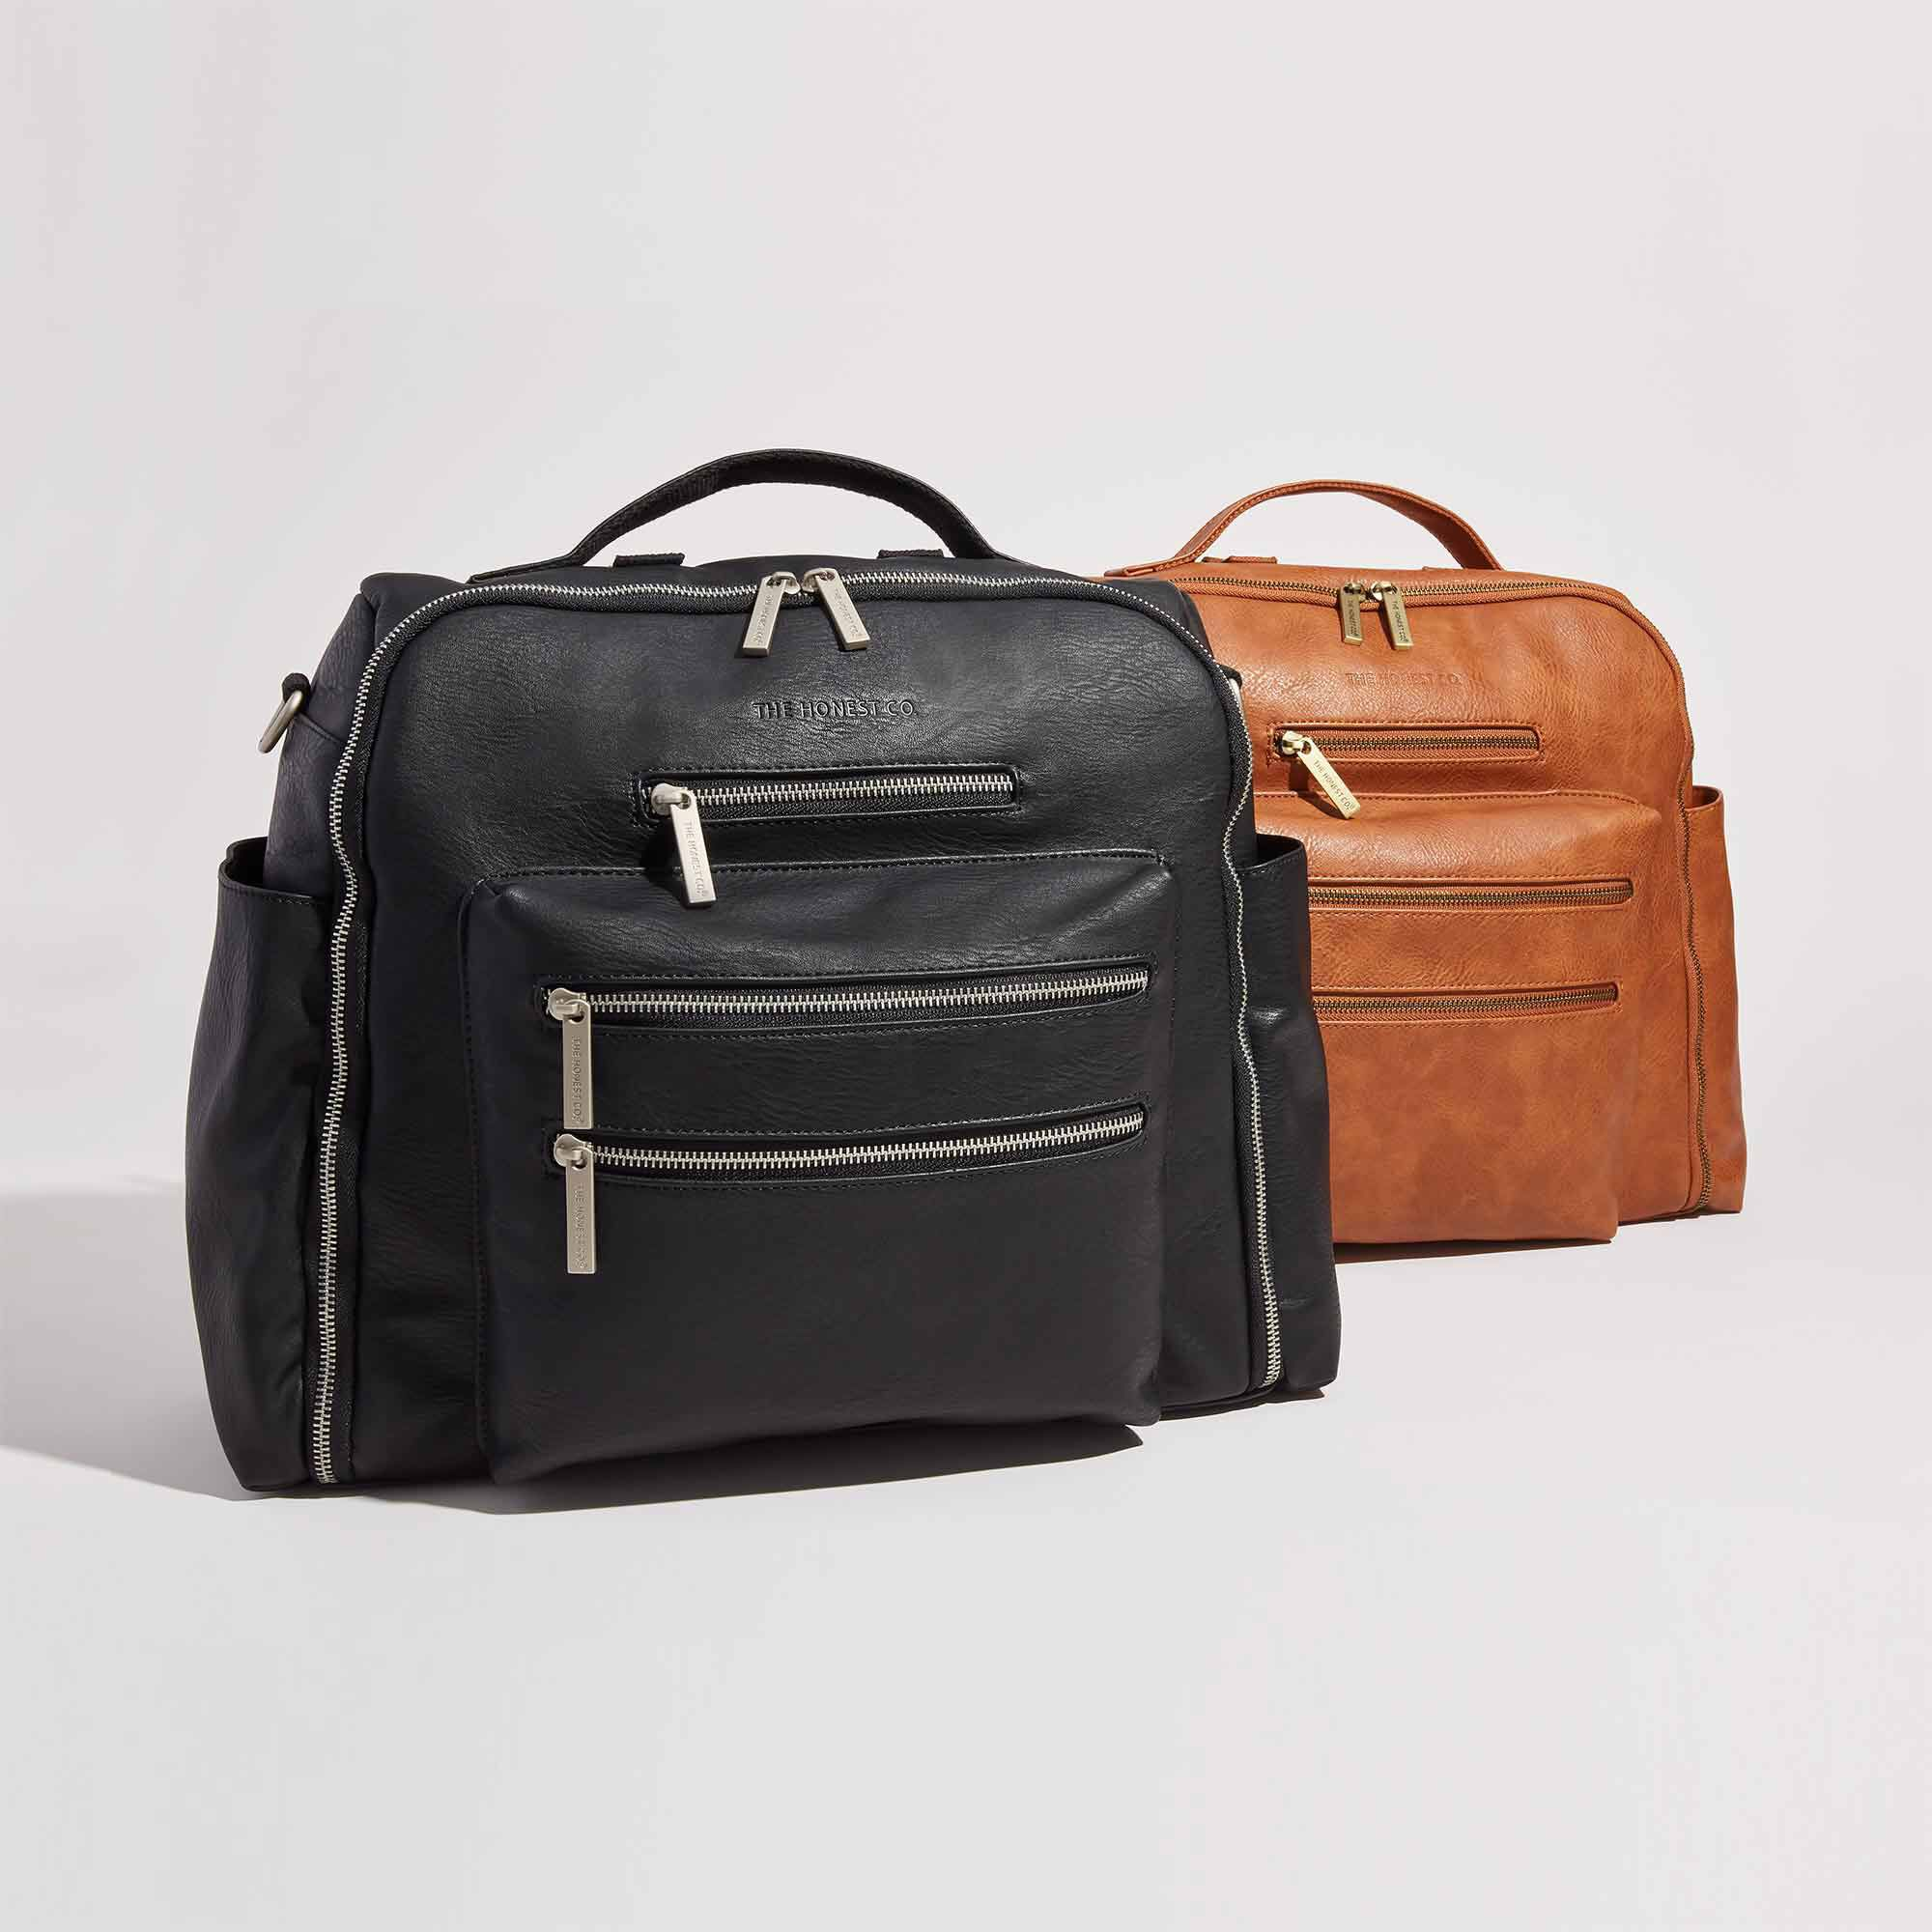 group image of both the black and cognac leather diaper bag, front of bag